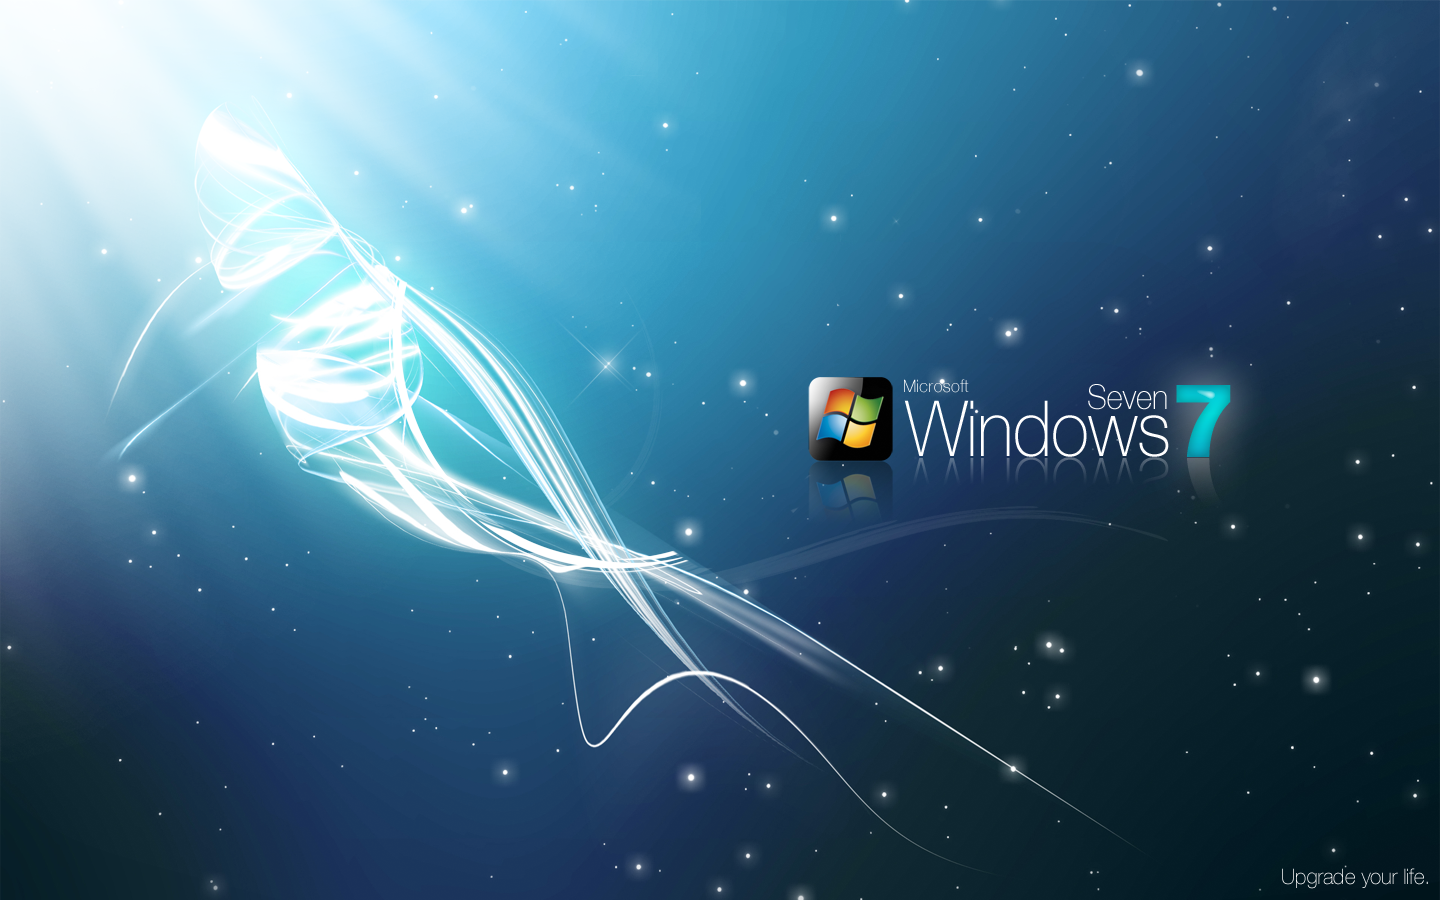 ... Wallpapers: New windows 7 wallpapers, new windows 7 wallpapers hd, new